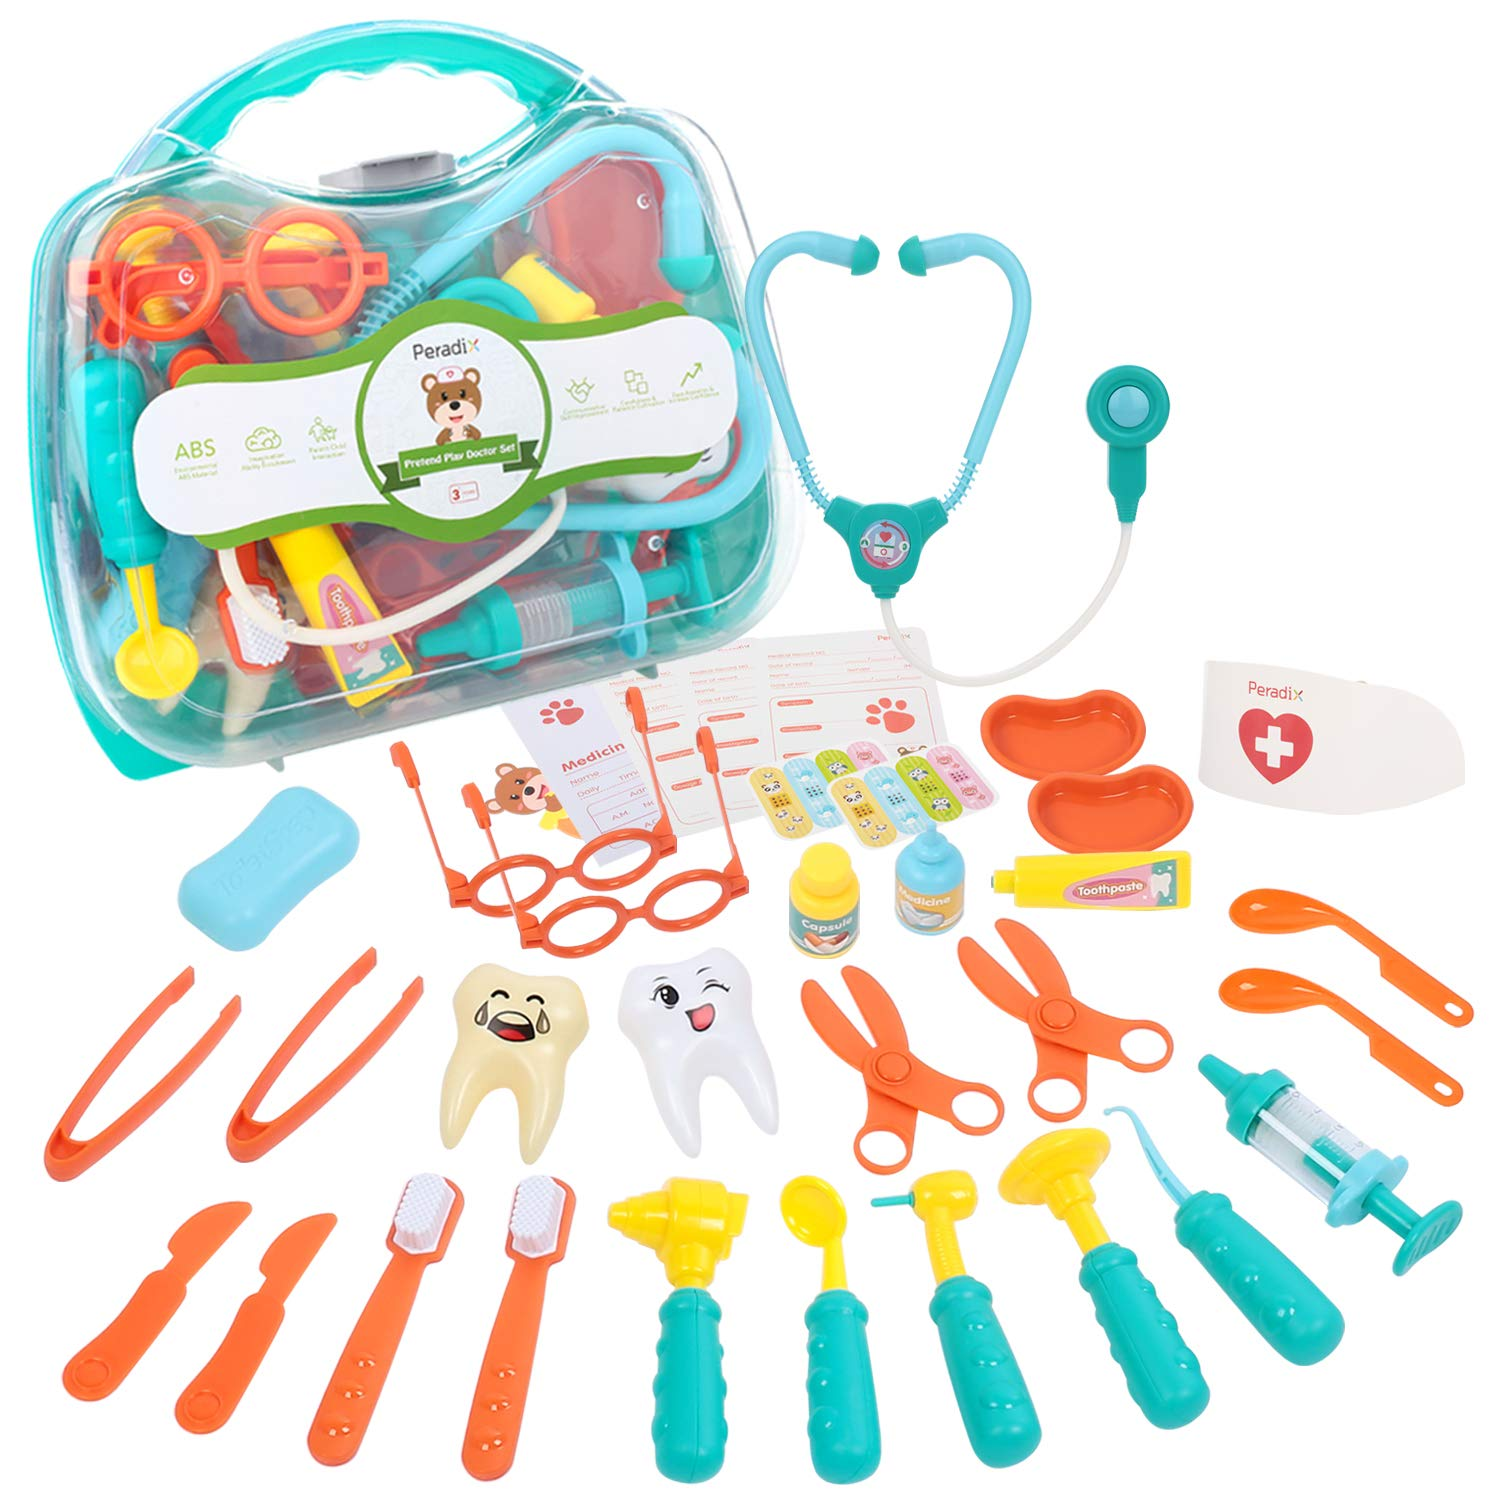 Peradix 41pcs Doctor Kit for Kids Medical Toy Set Durable Role Play Dentist Case Stethoscope Toy Gift for Kids Age 3+